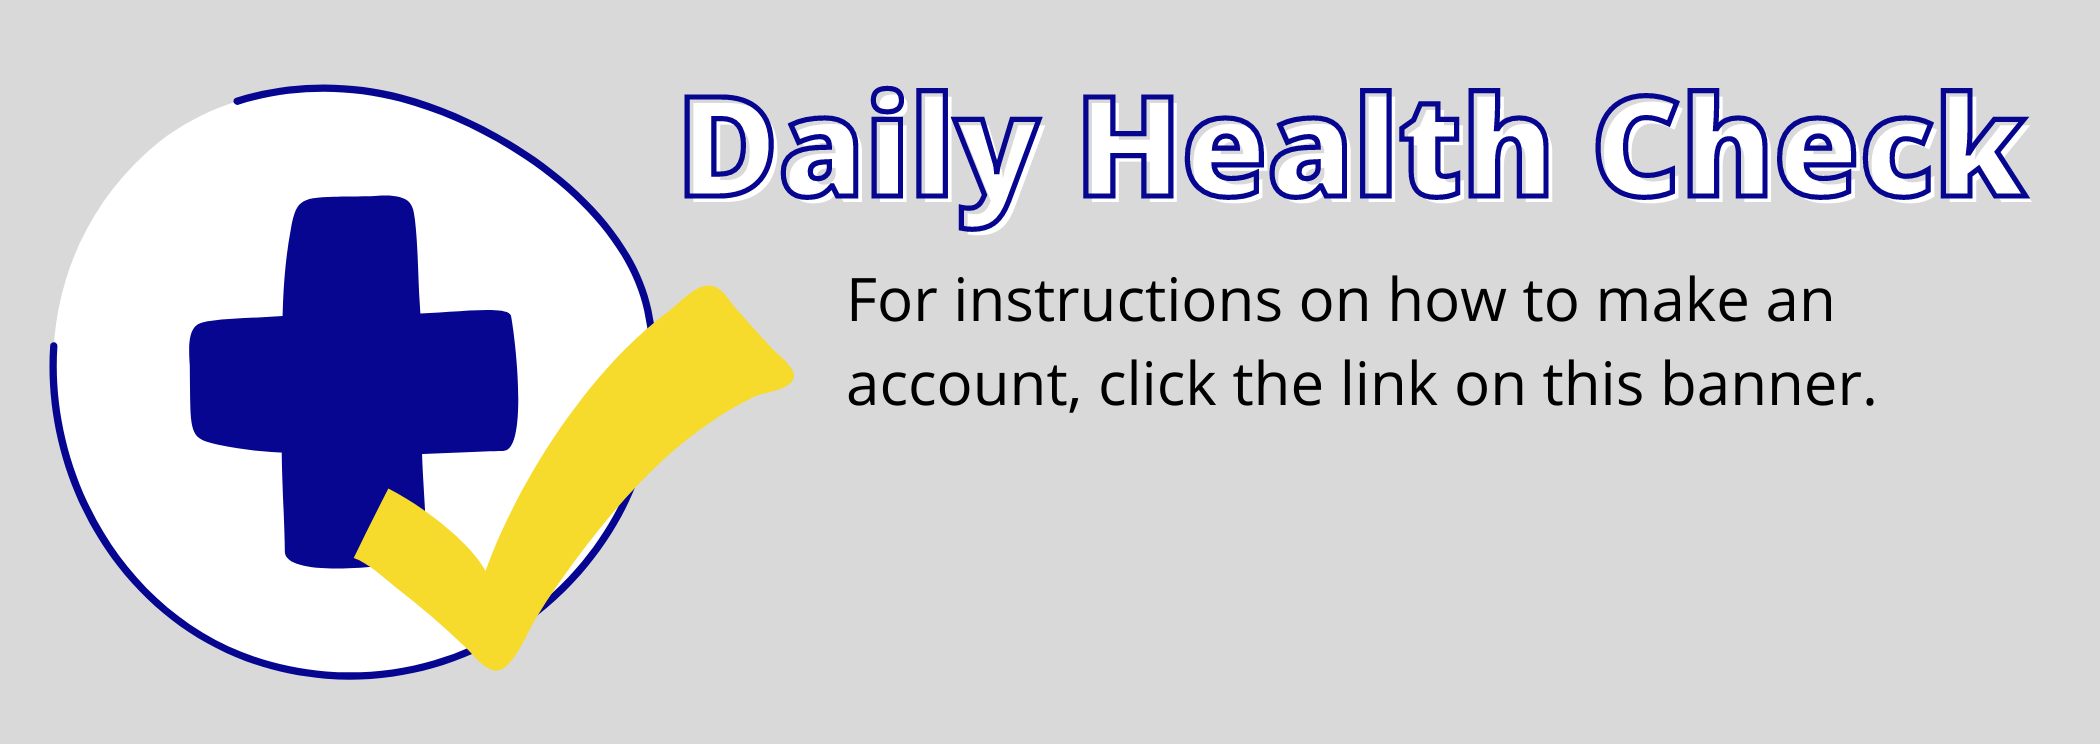 Daily Health Check. For instructions, click the link on this Banner.